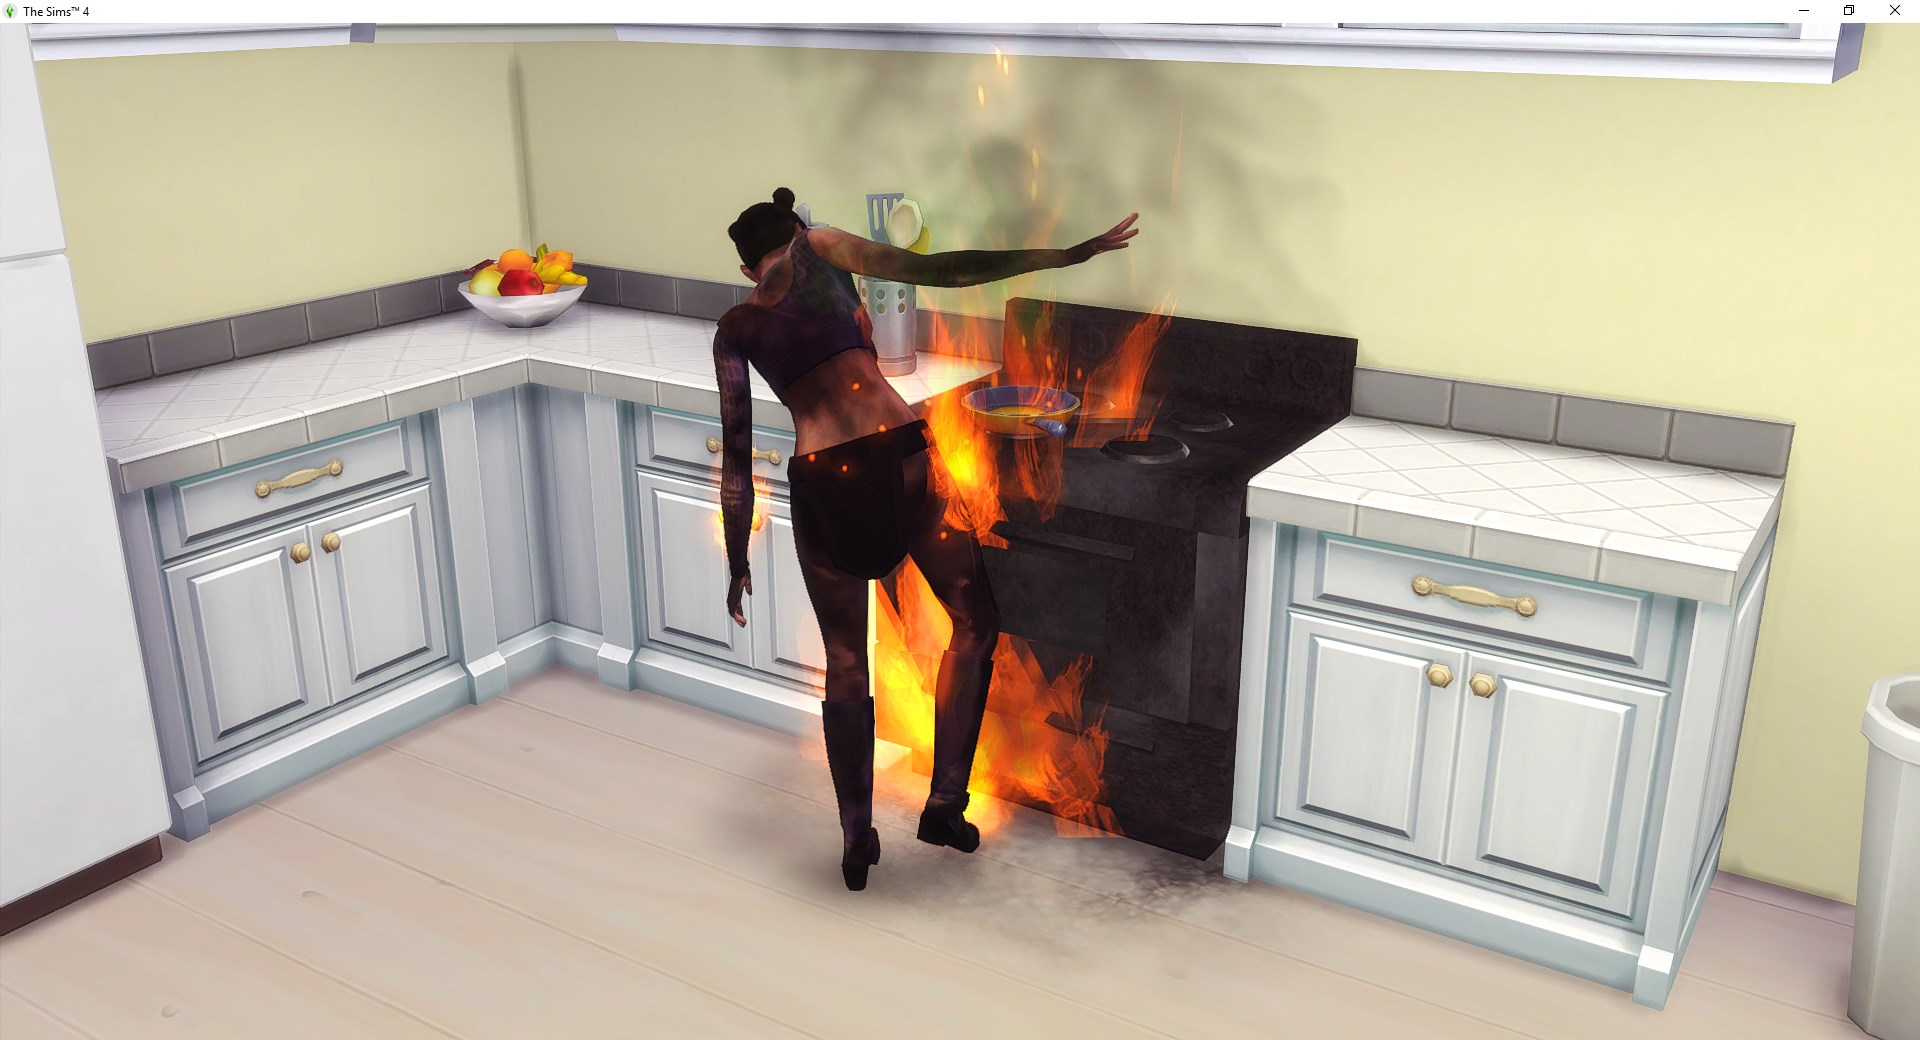 2019-10-23 14_43_19-The Sims™ 4